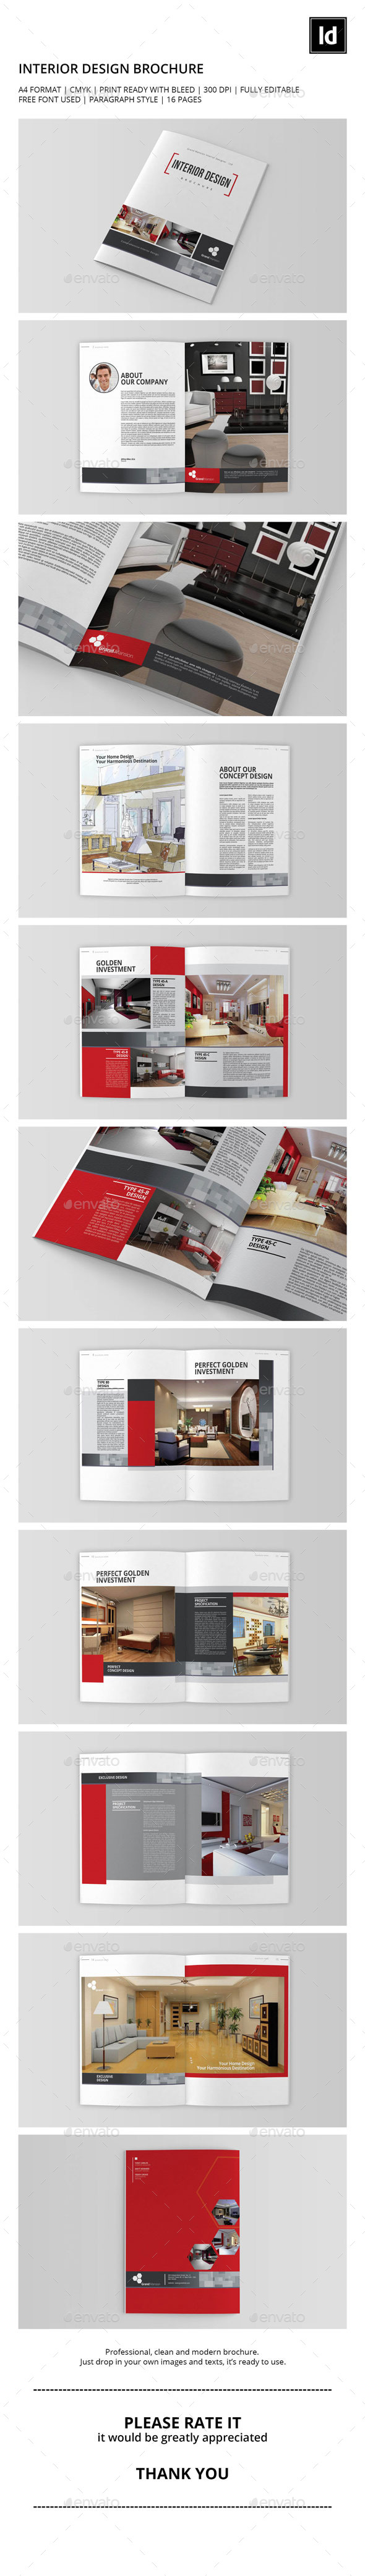 GraphicRiver Interior Design Brochure Catalog Vol.1 9264869